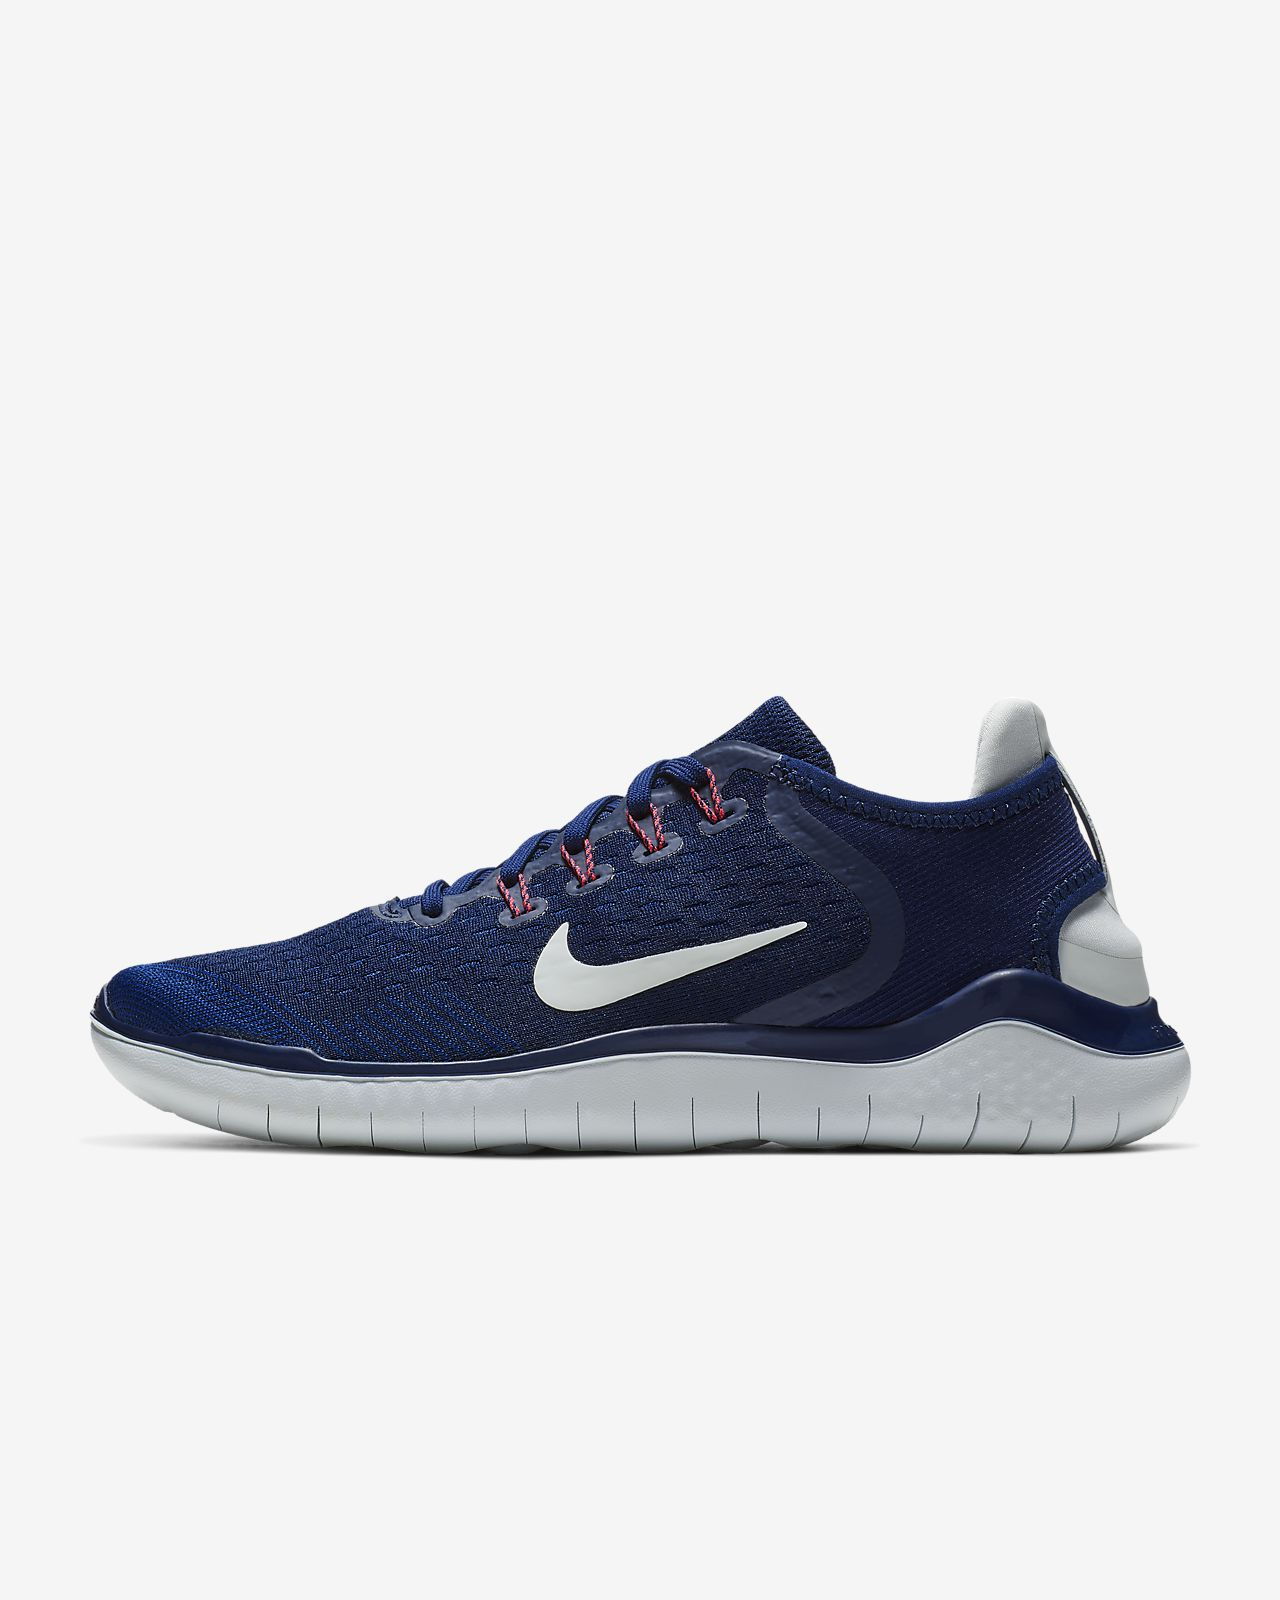 best loved 0fa88 61951 ... Nike Free RN 2018 Women s Running Shoe